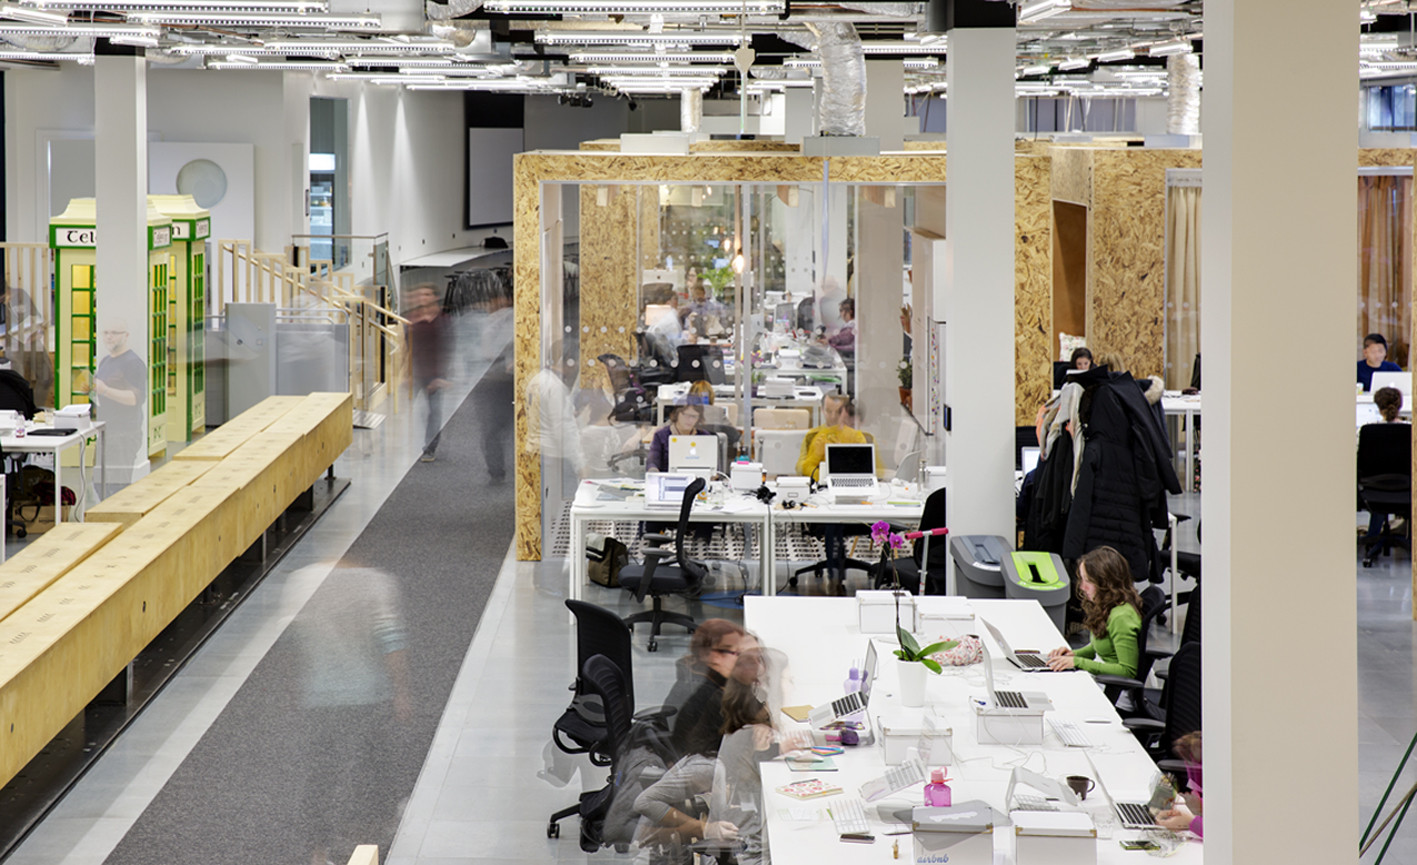 Gallery of airbnb s european operations hub in dublin heneghan peng architects 9 - Airbnb office dublin address ...